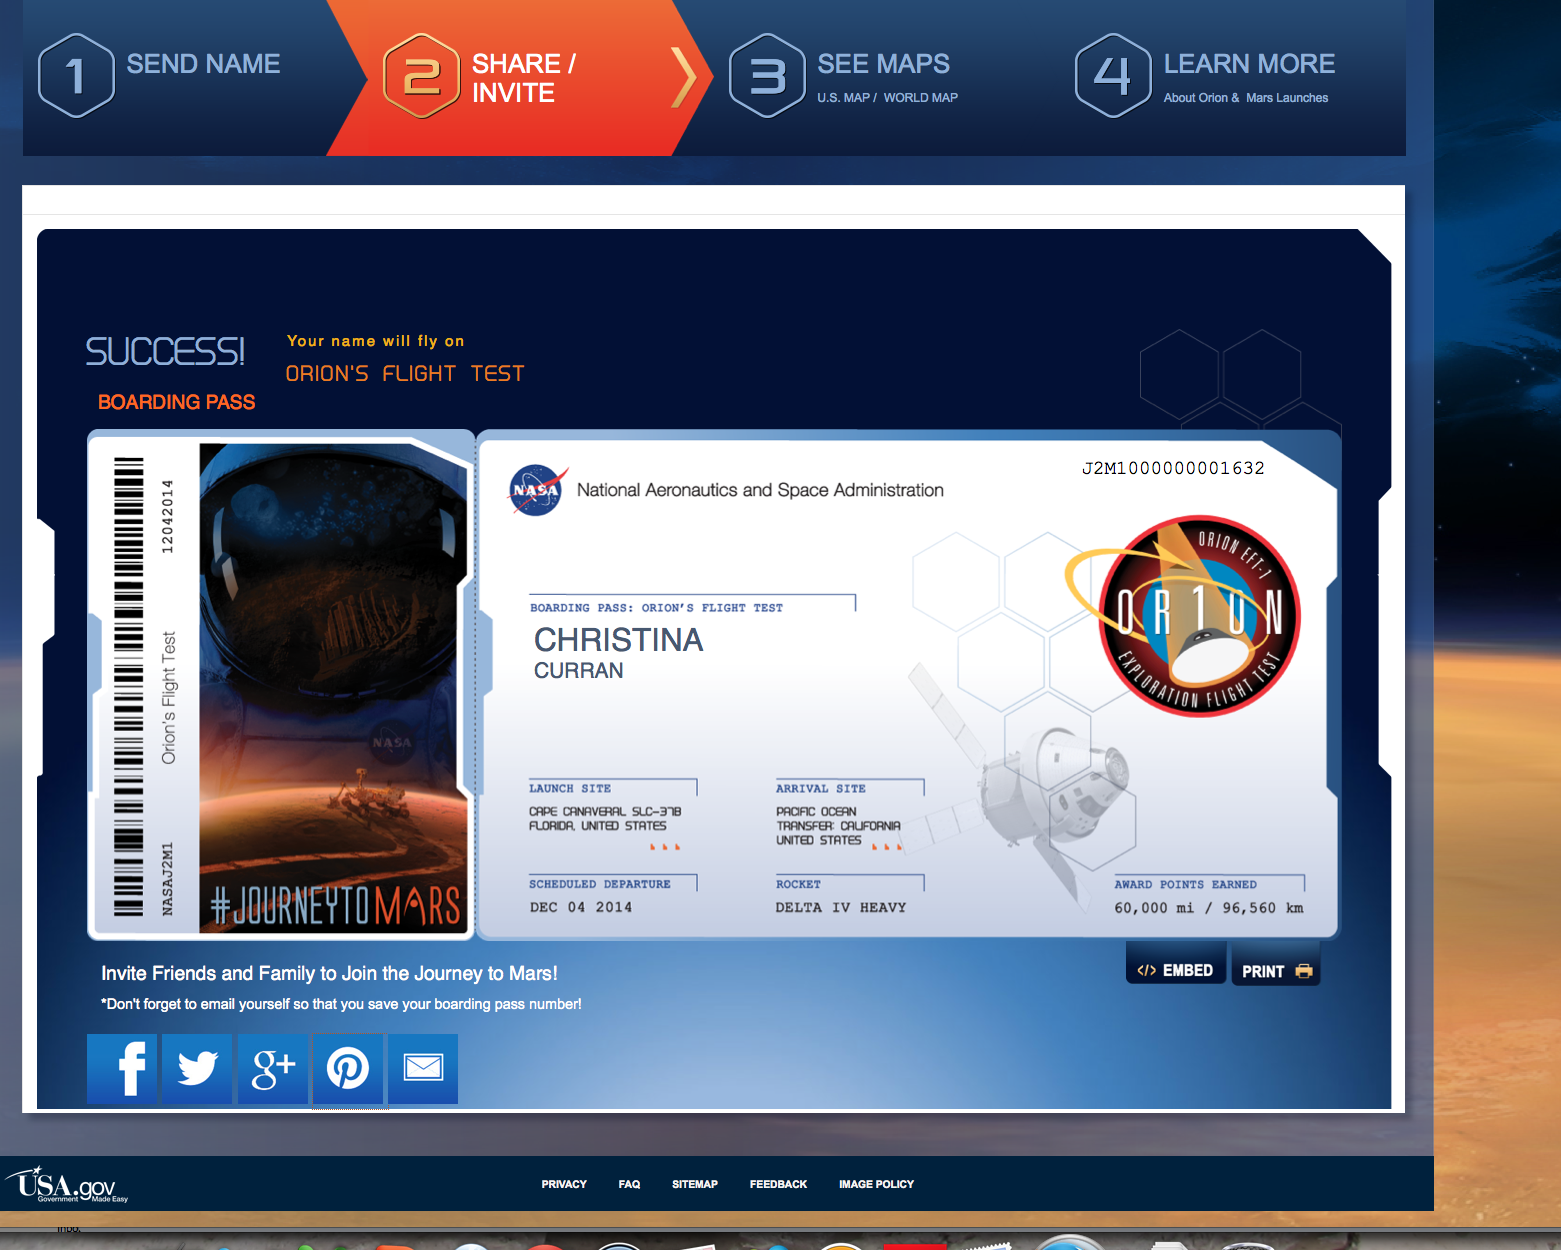 Just Put My Boarding Pass For The Mission To Mars They Take Your